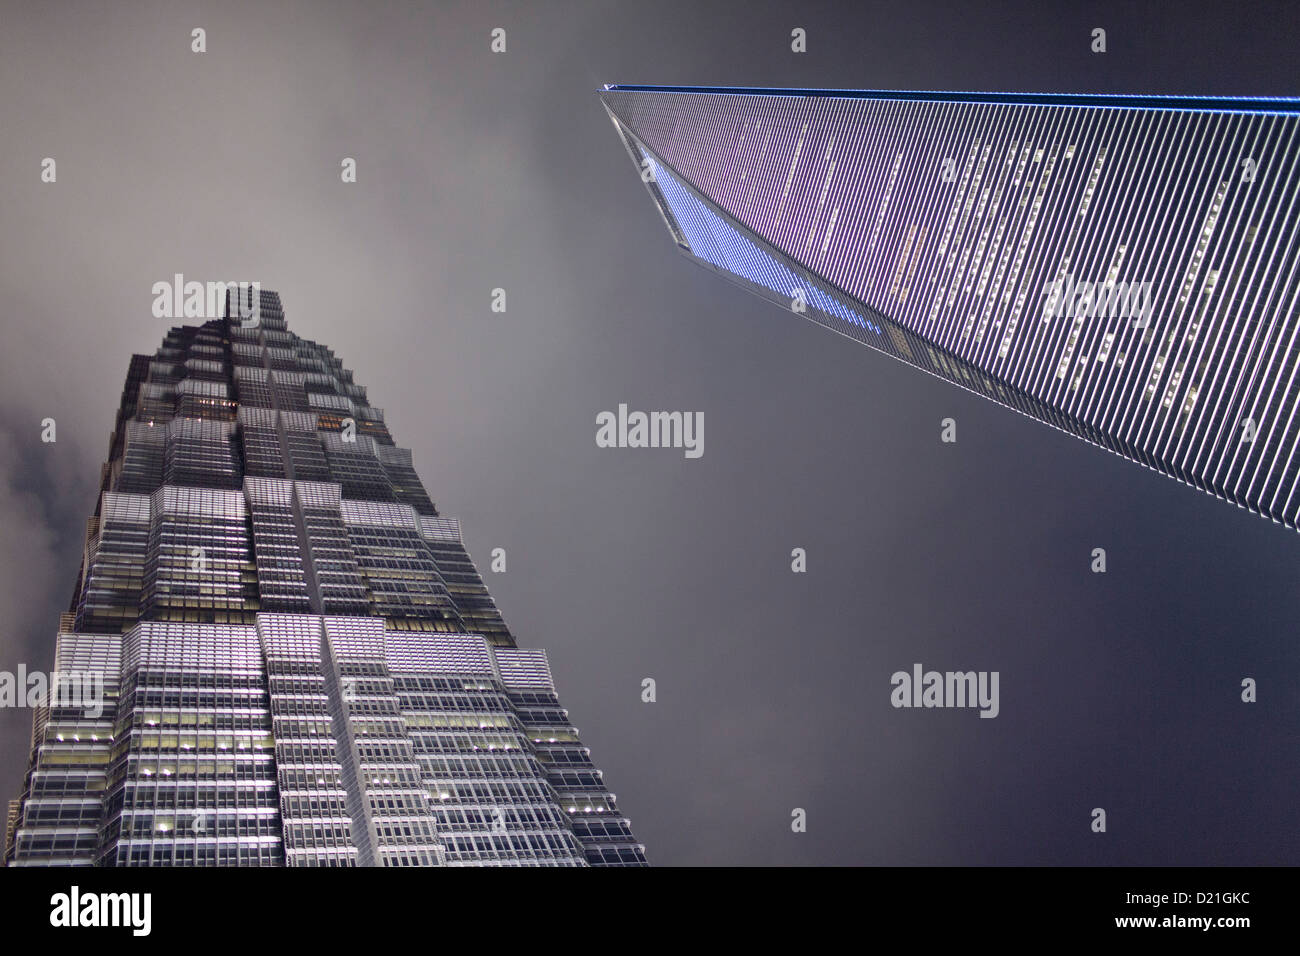 Low angle view of Shanghai World Financial Center and Jin Mao Tower at night, Pudong, Shanghai, China, Asia - Stock Image